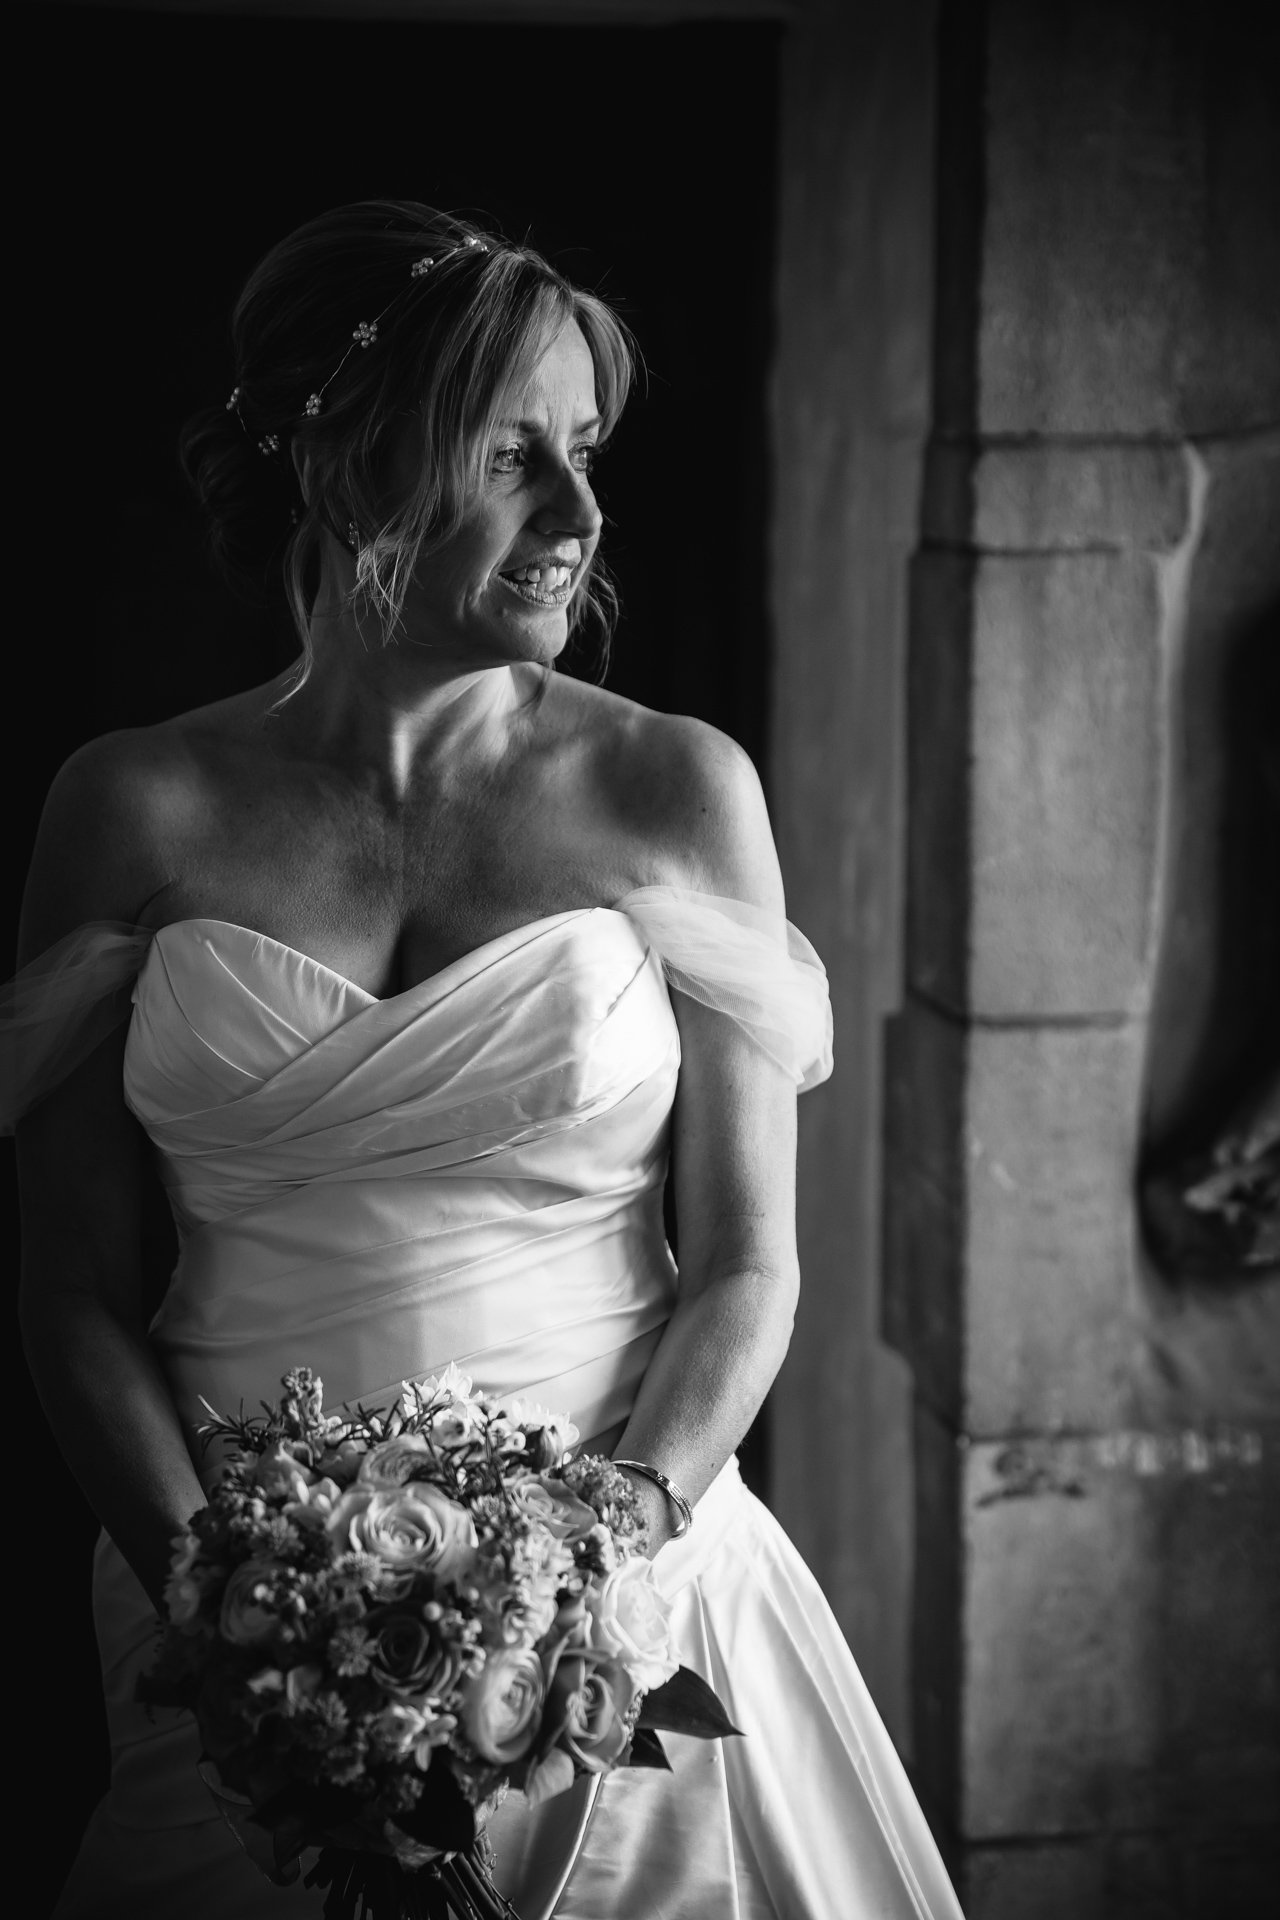 Stunning bride bathed in window light before her wedding at Allington Castle, Kent